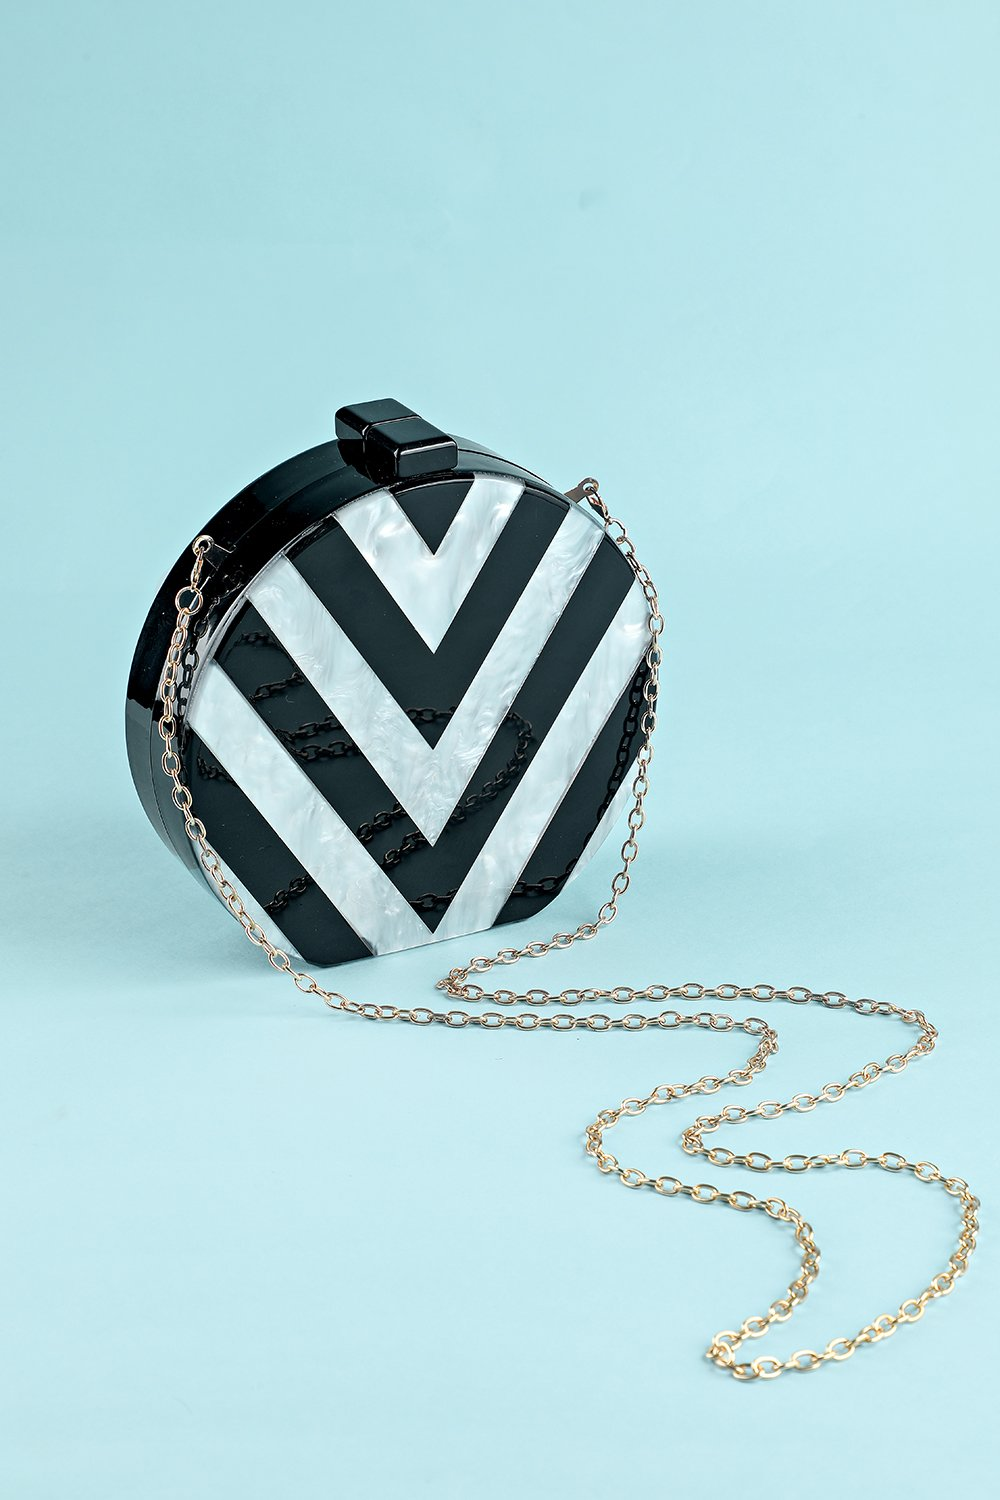 Black and White Striped Acrylic Handbag